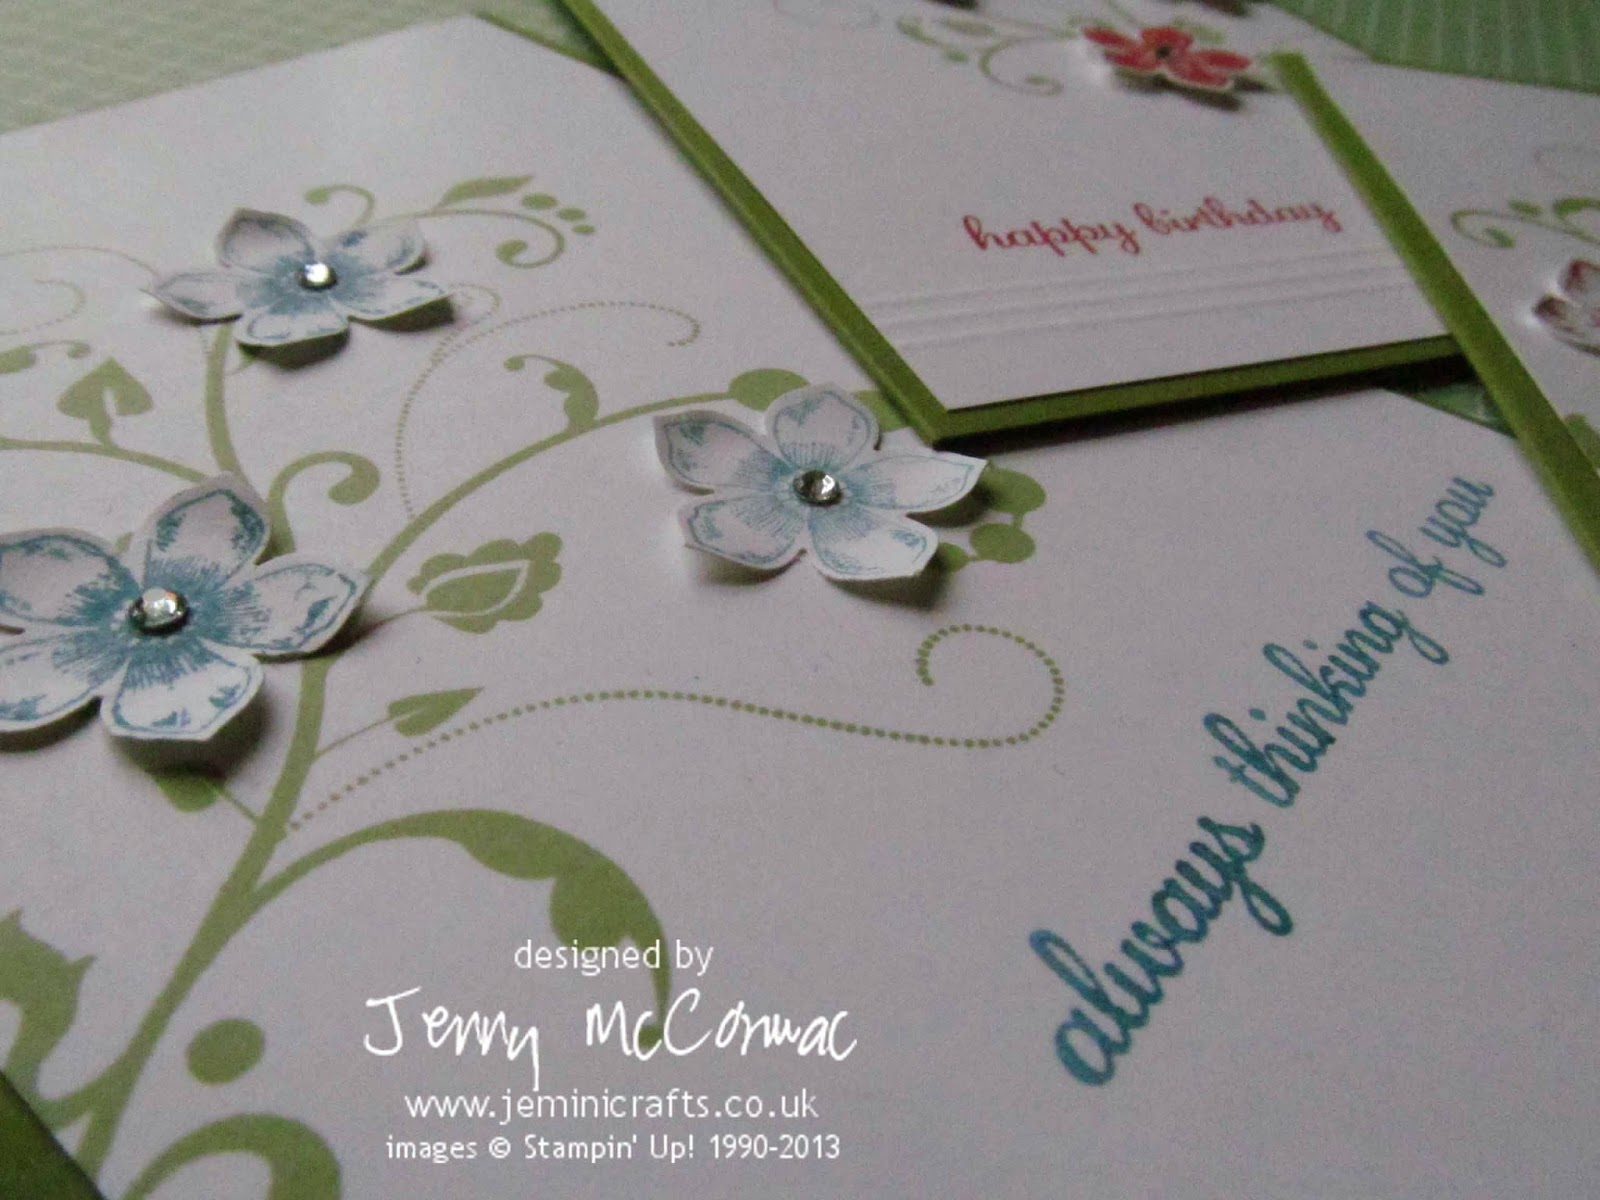 Petite Petals Private Class Stampin Up Jemini Crafts March 2014